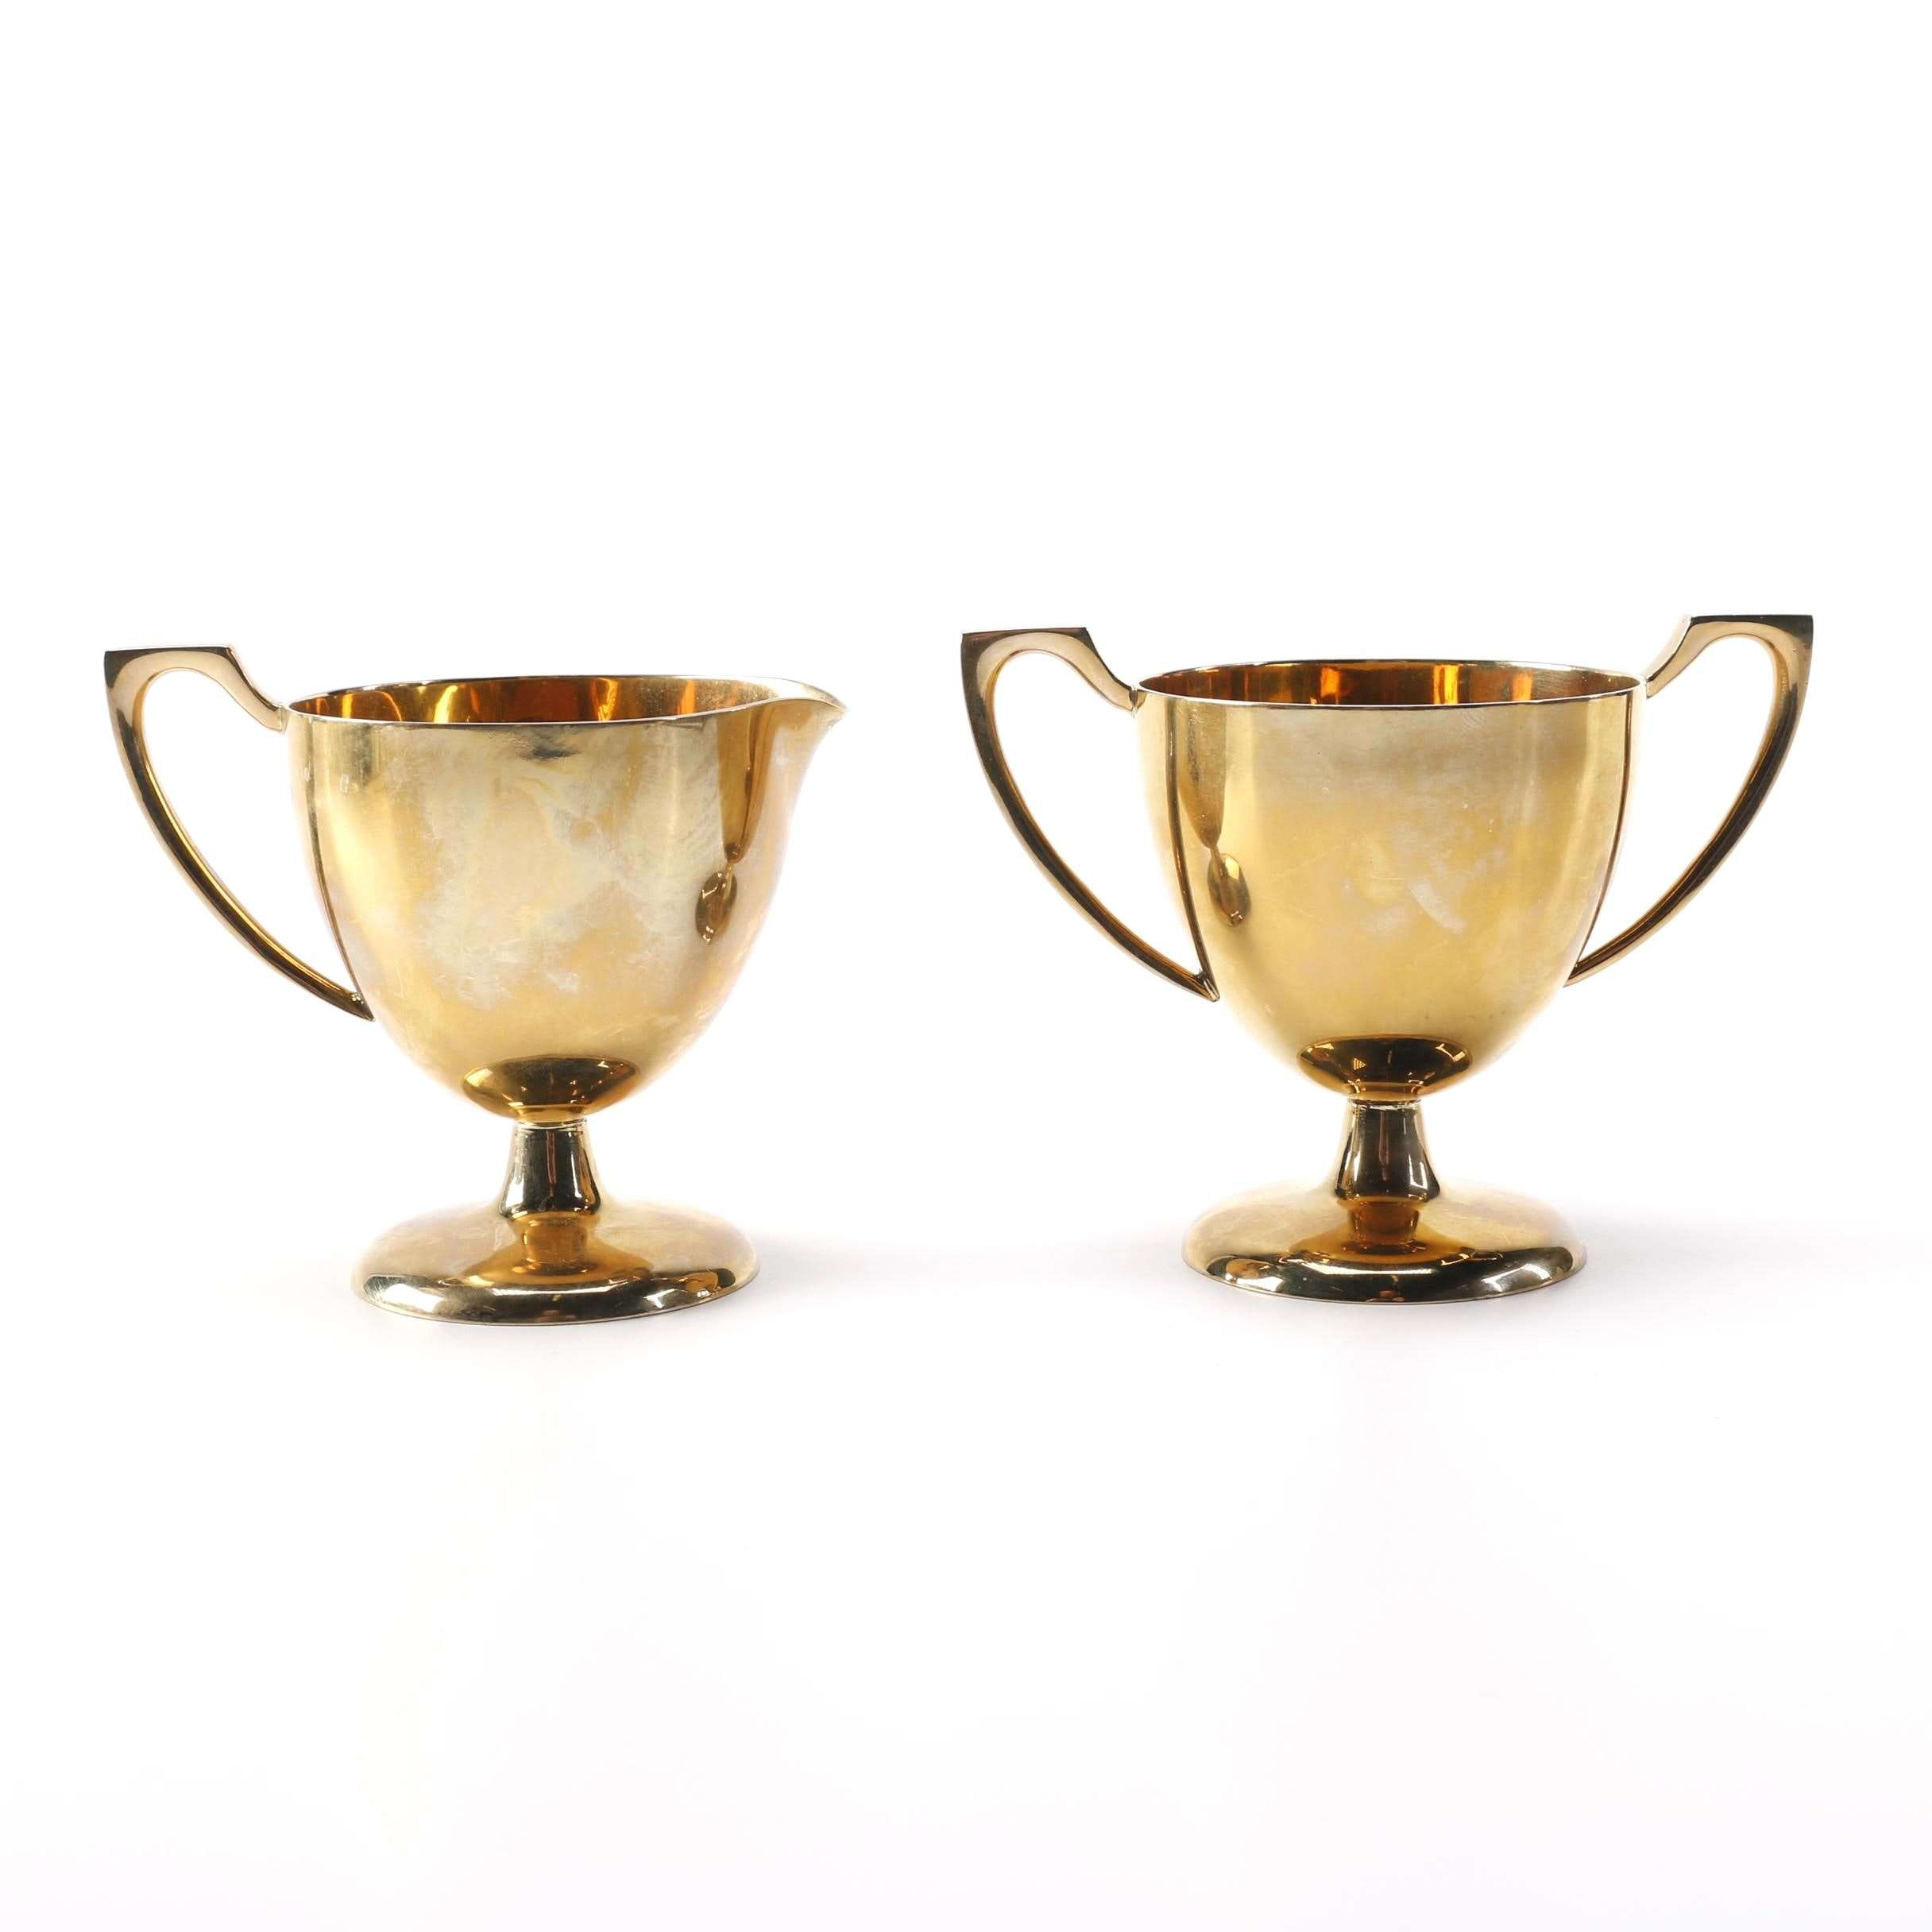 Dirilyte Electroplated Creamer and Sugar Bowl